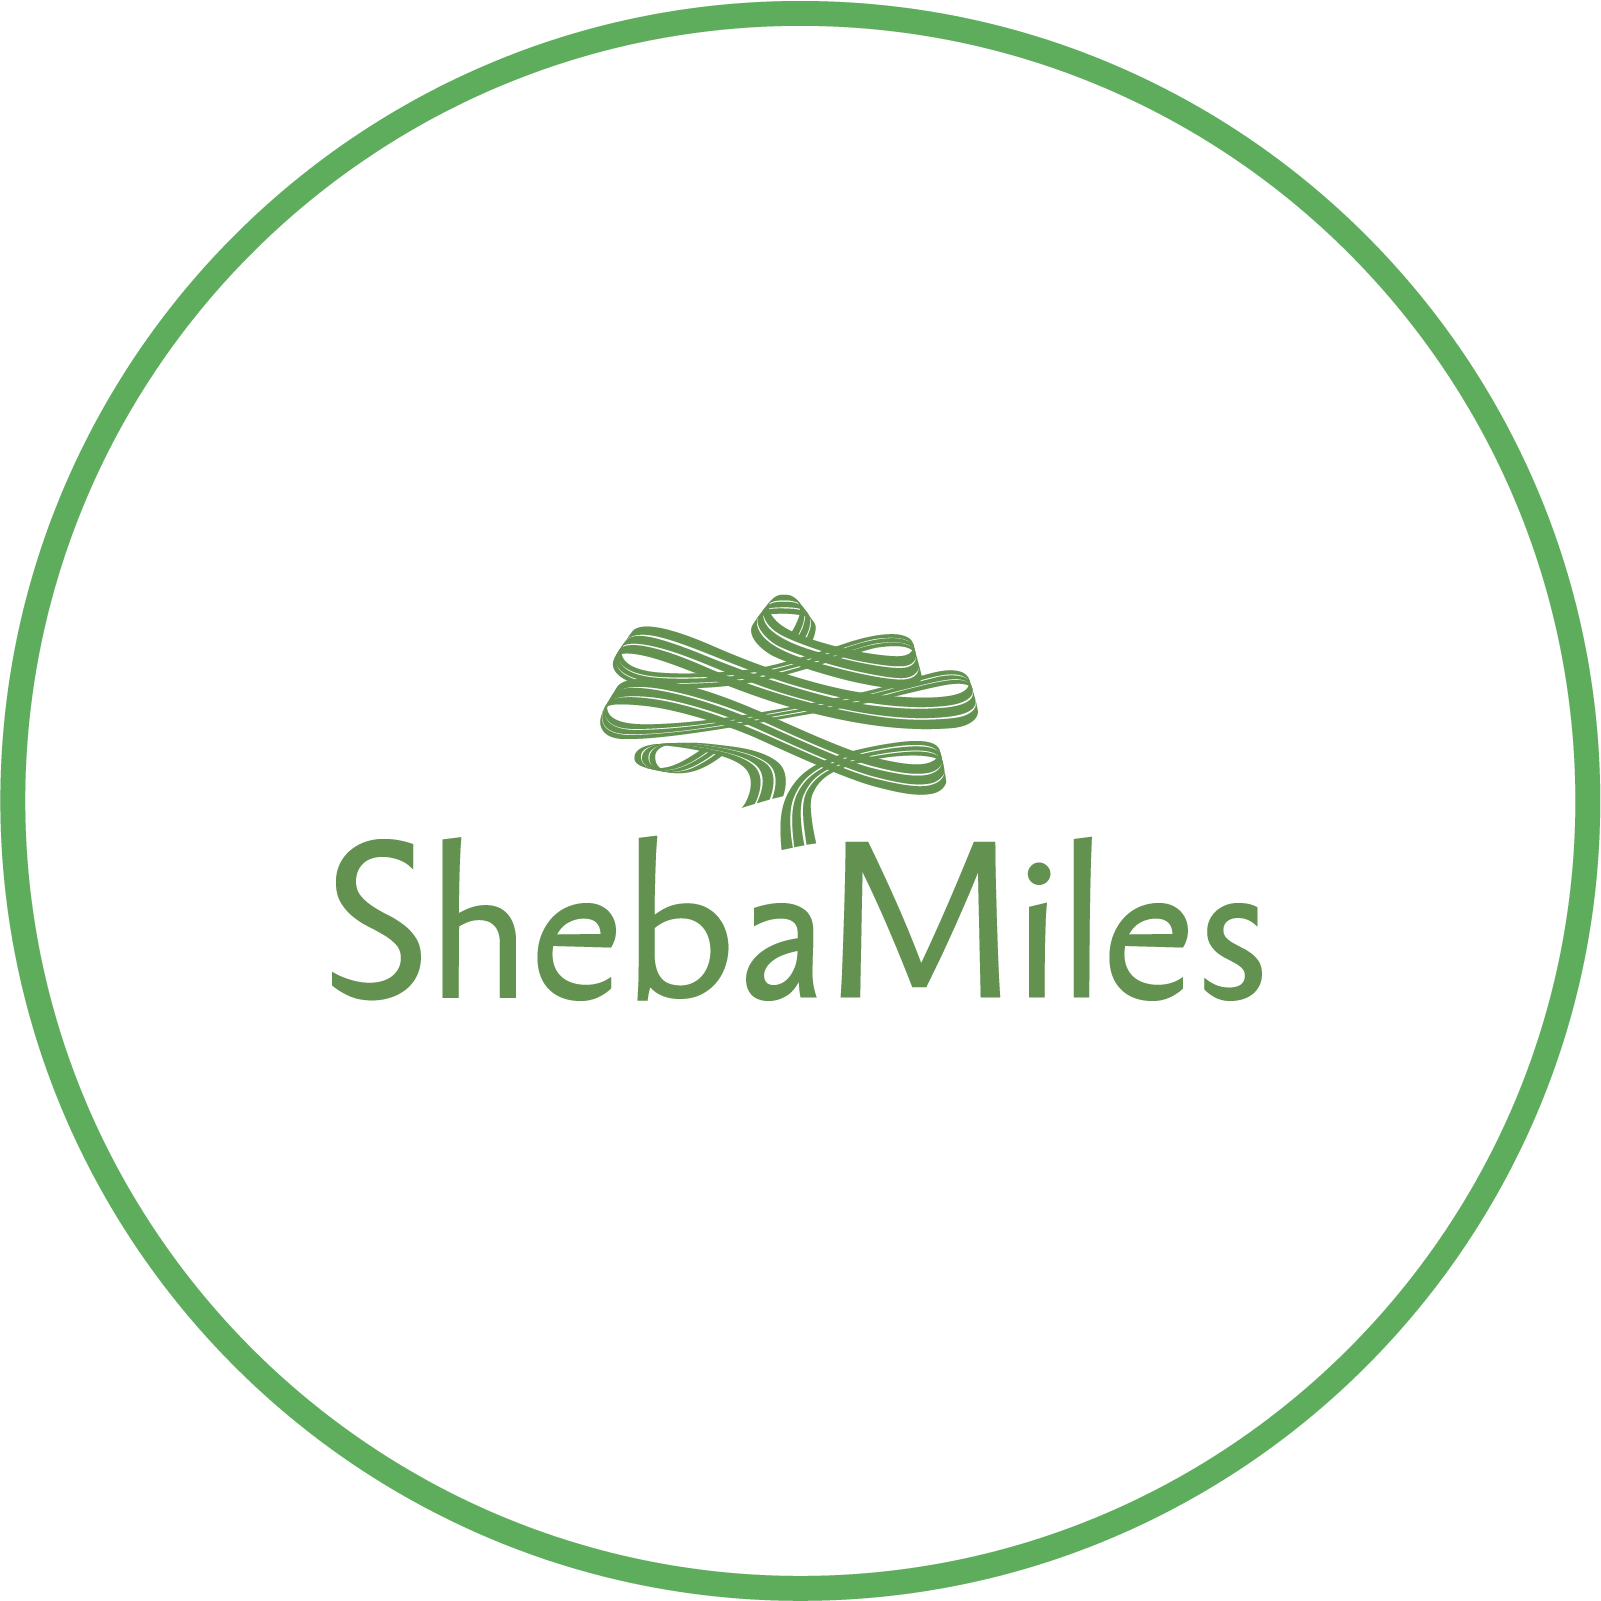 Shebamiles deals and offer